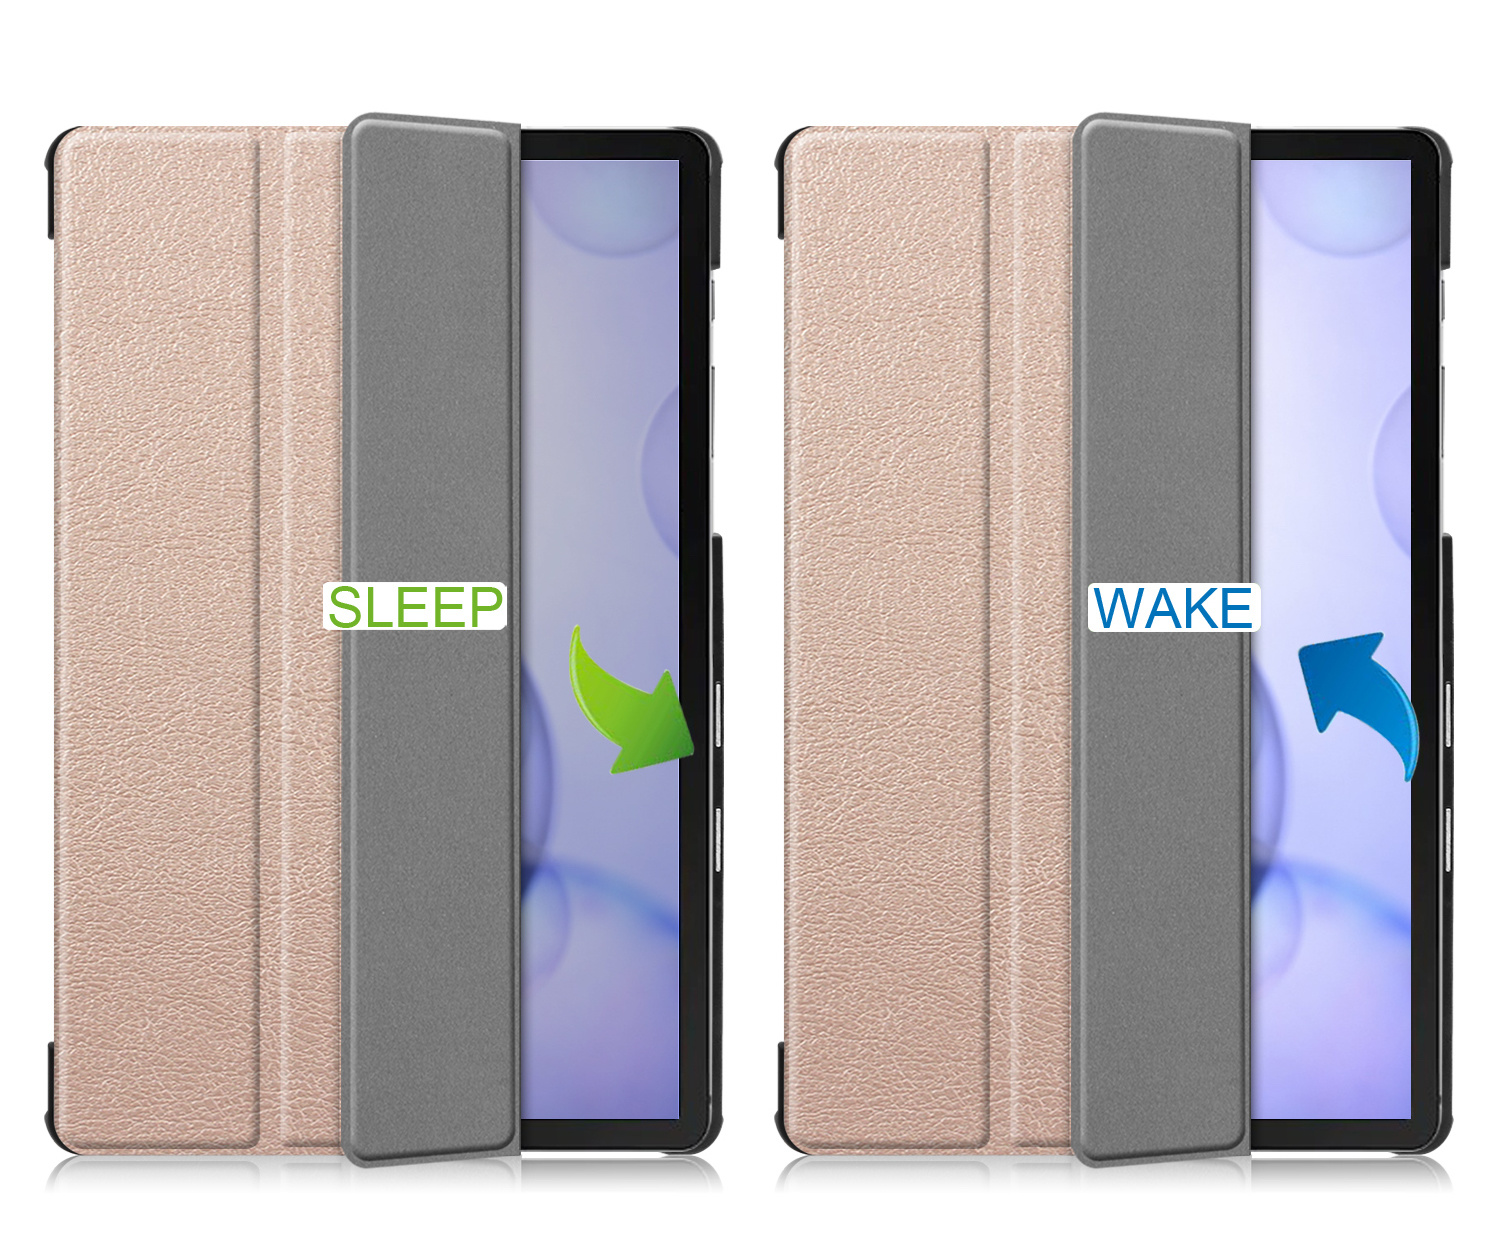 Lunso 3-Vouw sleepcover hoes Goud voor de Samsung Galaxy Tab S6